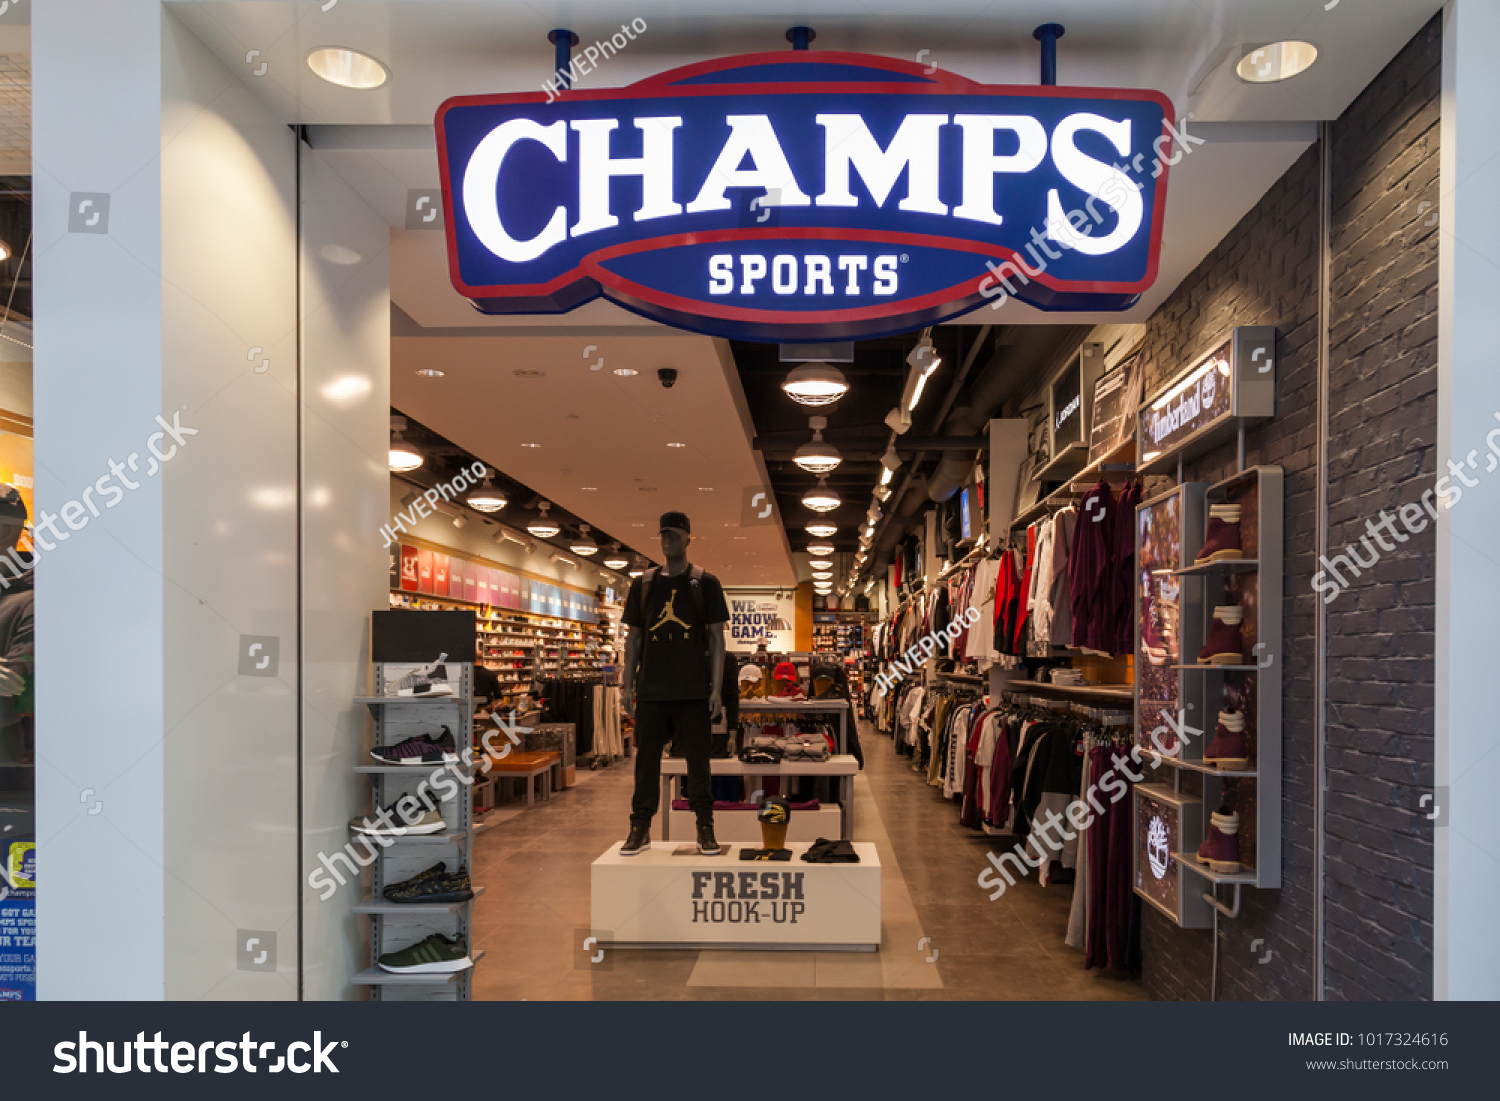 673c22d67a5 TORONTO CANADA JANUARY 19 2018 Champs Stock Photo (Edit Now ...